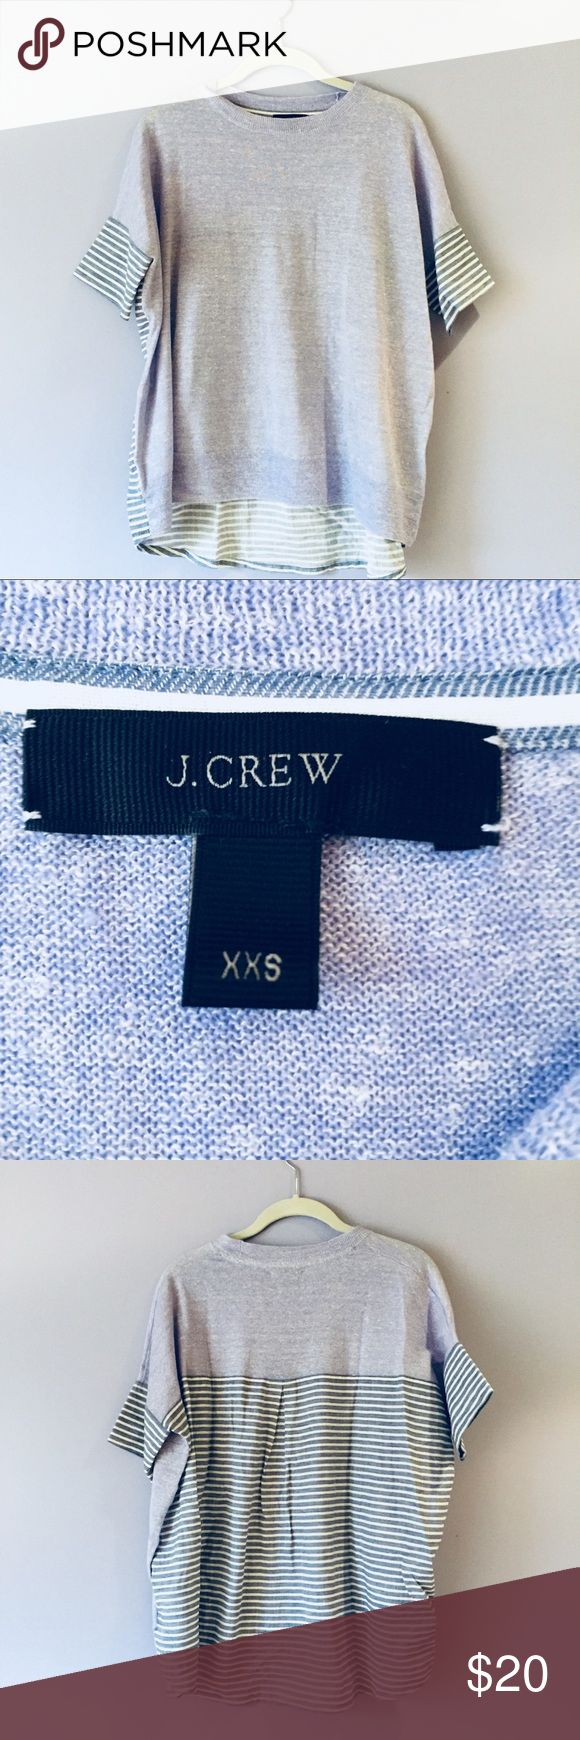 J. Crew linen & cotton stripe tee Excellent condition tee by J. Crew. Linen light blue front with a stripe shirttail in the back, retail not outlet. Size says XXS but it is a loose fitting tee - can fit XS or S. Offers welcome! J. Crew Tops Blouses